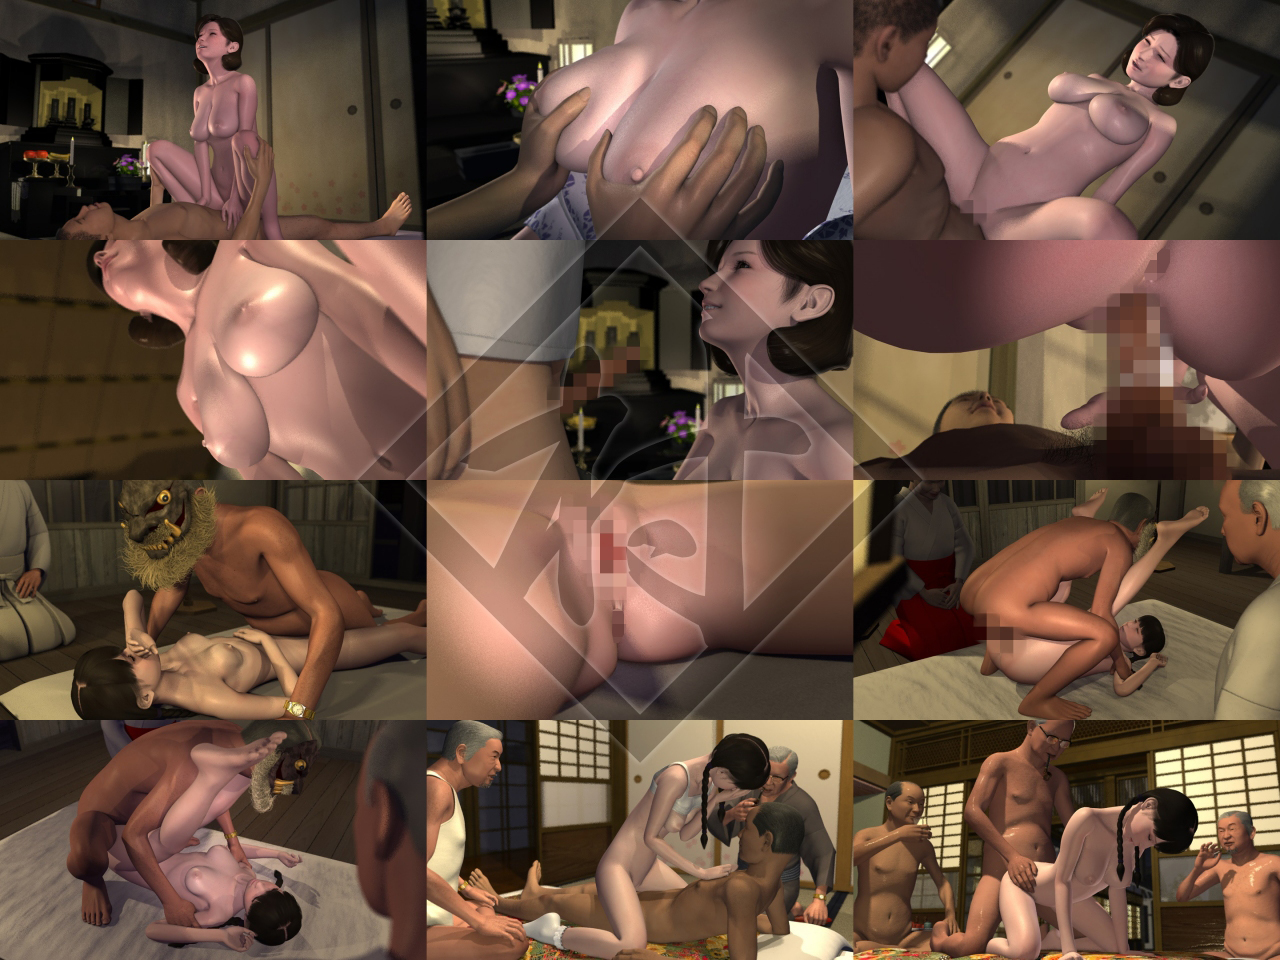 Porn torrent game naked images